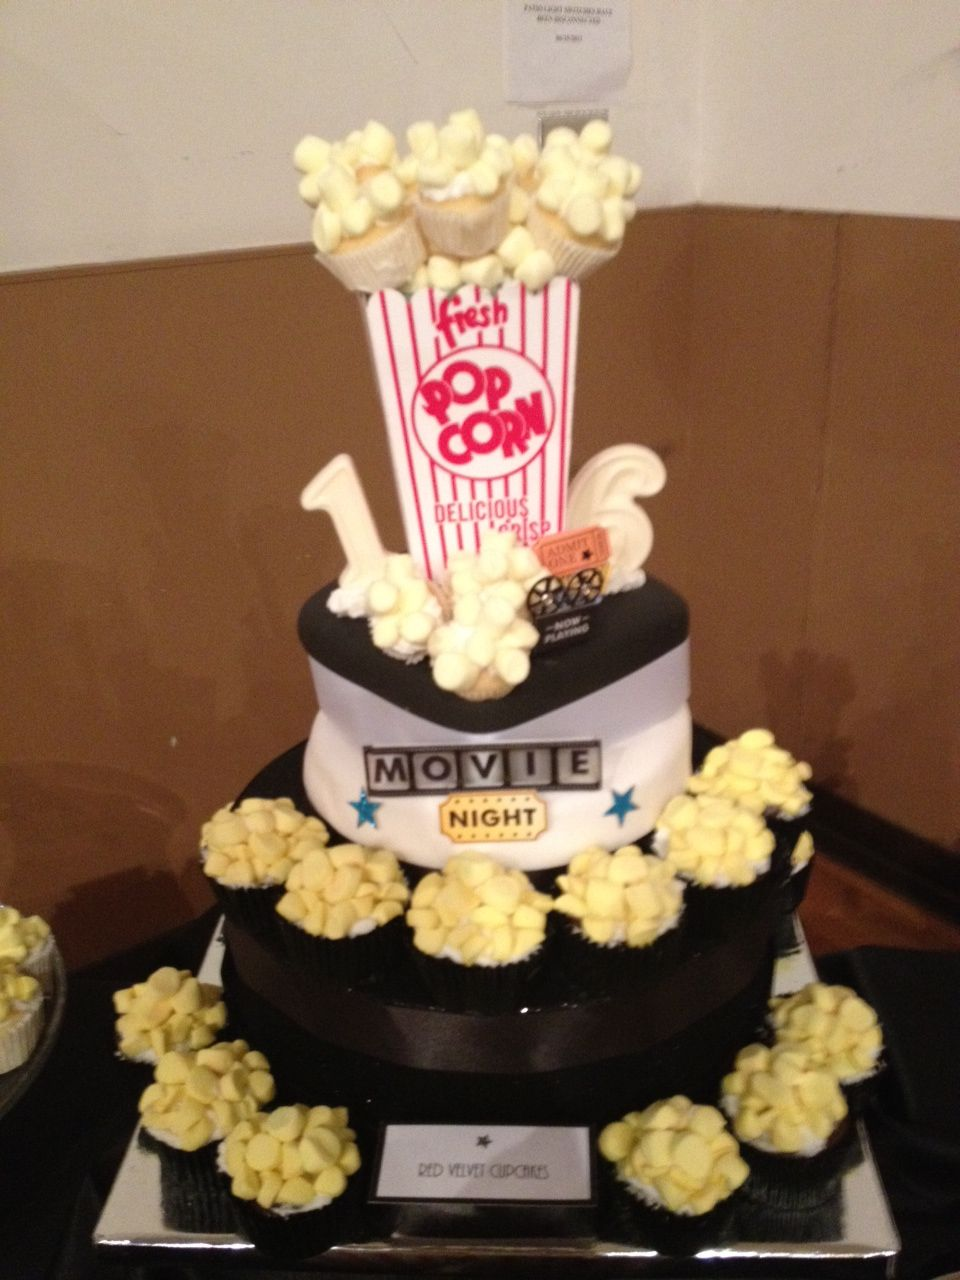 'Pop corn' cupcakes for a movie party